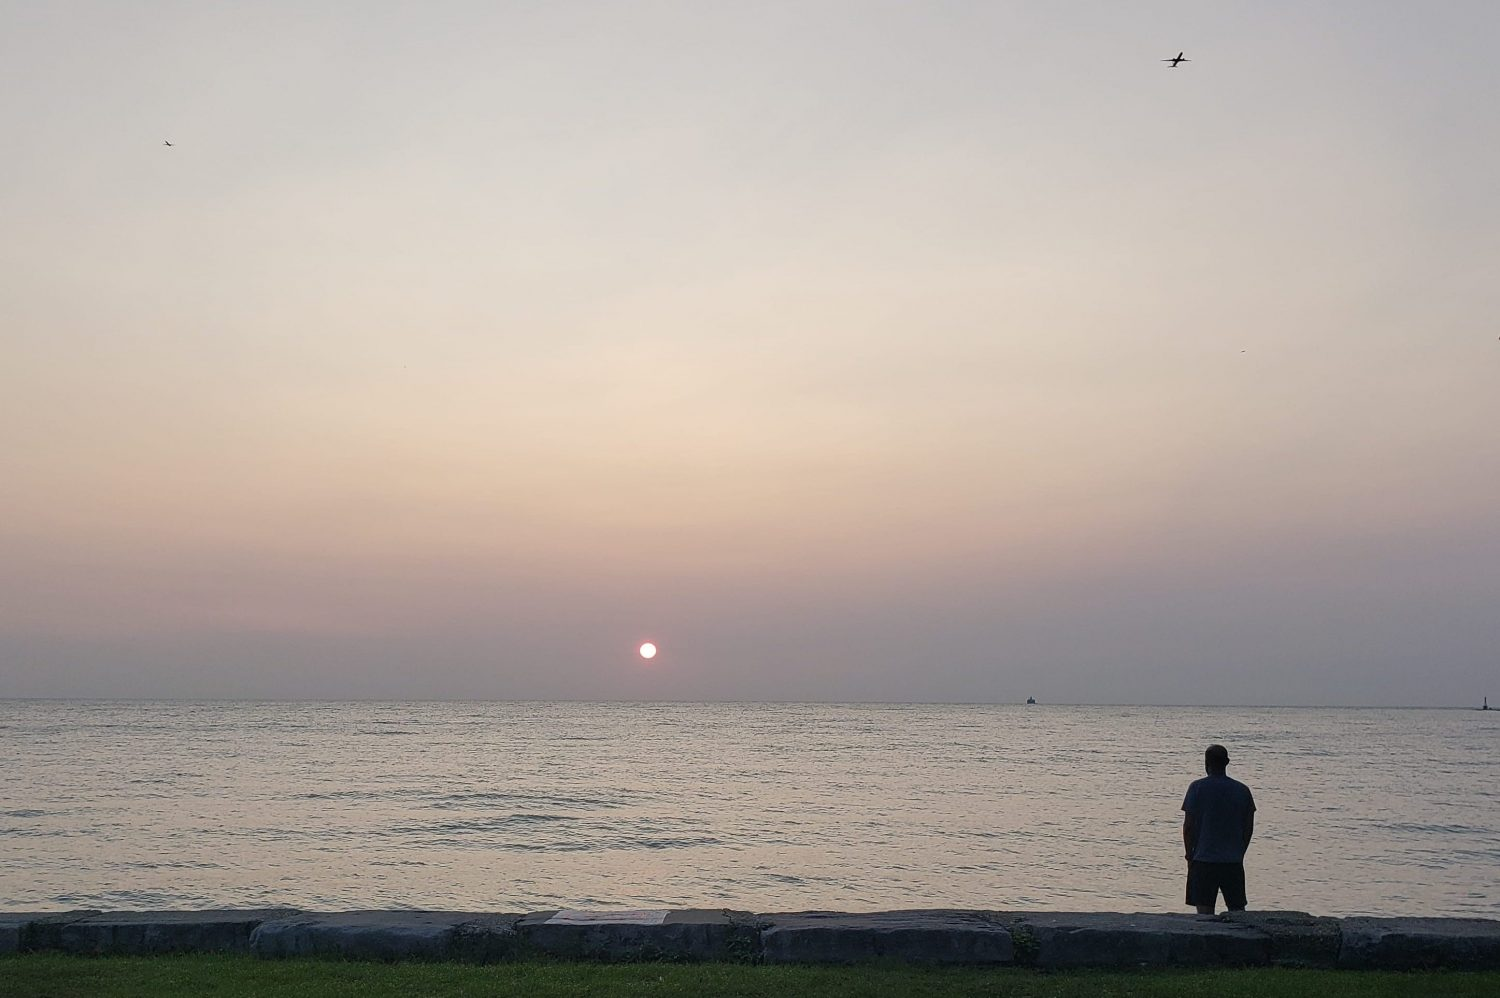 A reddish sun rises in a hazy sky over the lakefront.